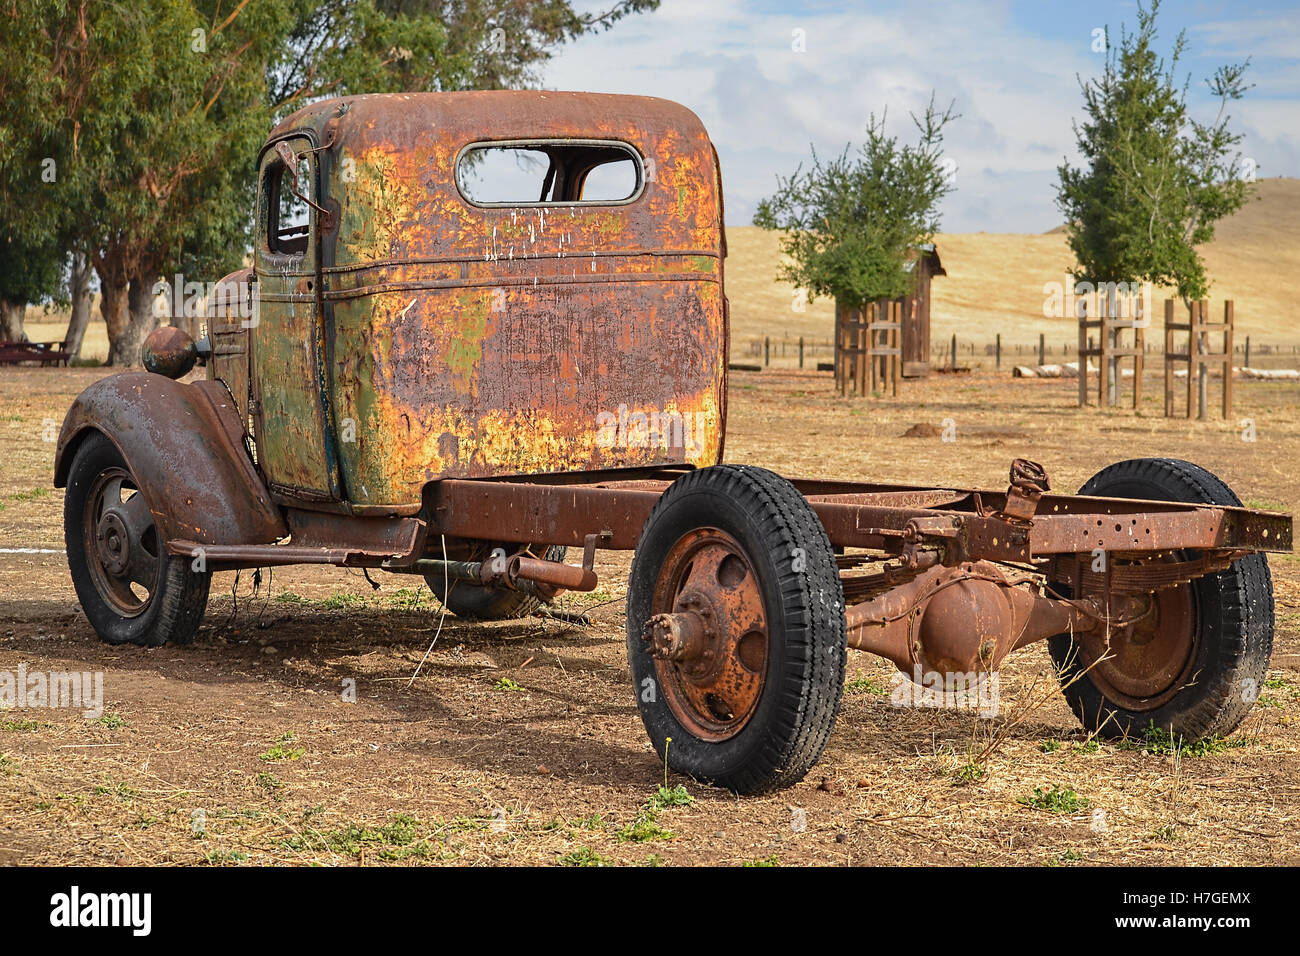 Old Abandoned Truck In Grass Stockfotos & Old Abandoned Truck In ...